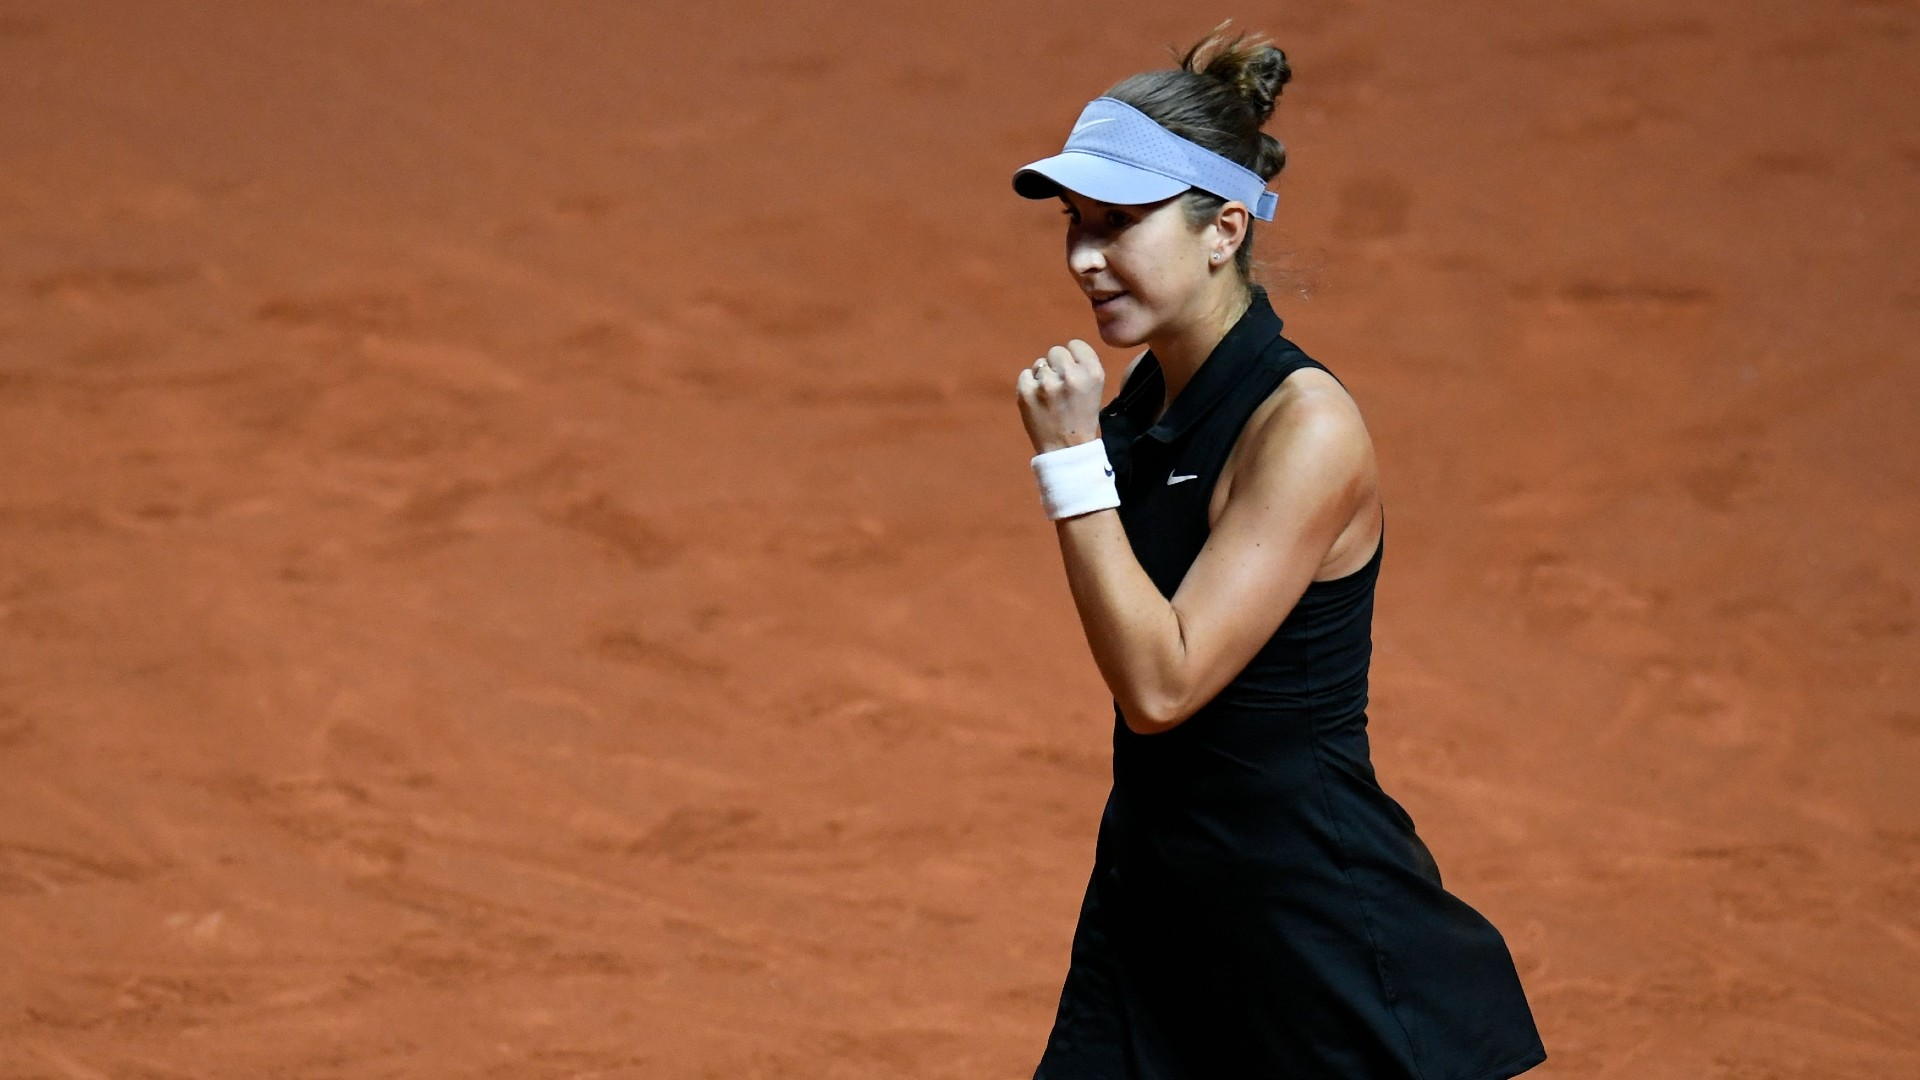 Bencic ends clay-court drought in Stuttgart